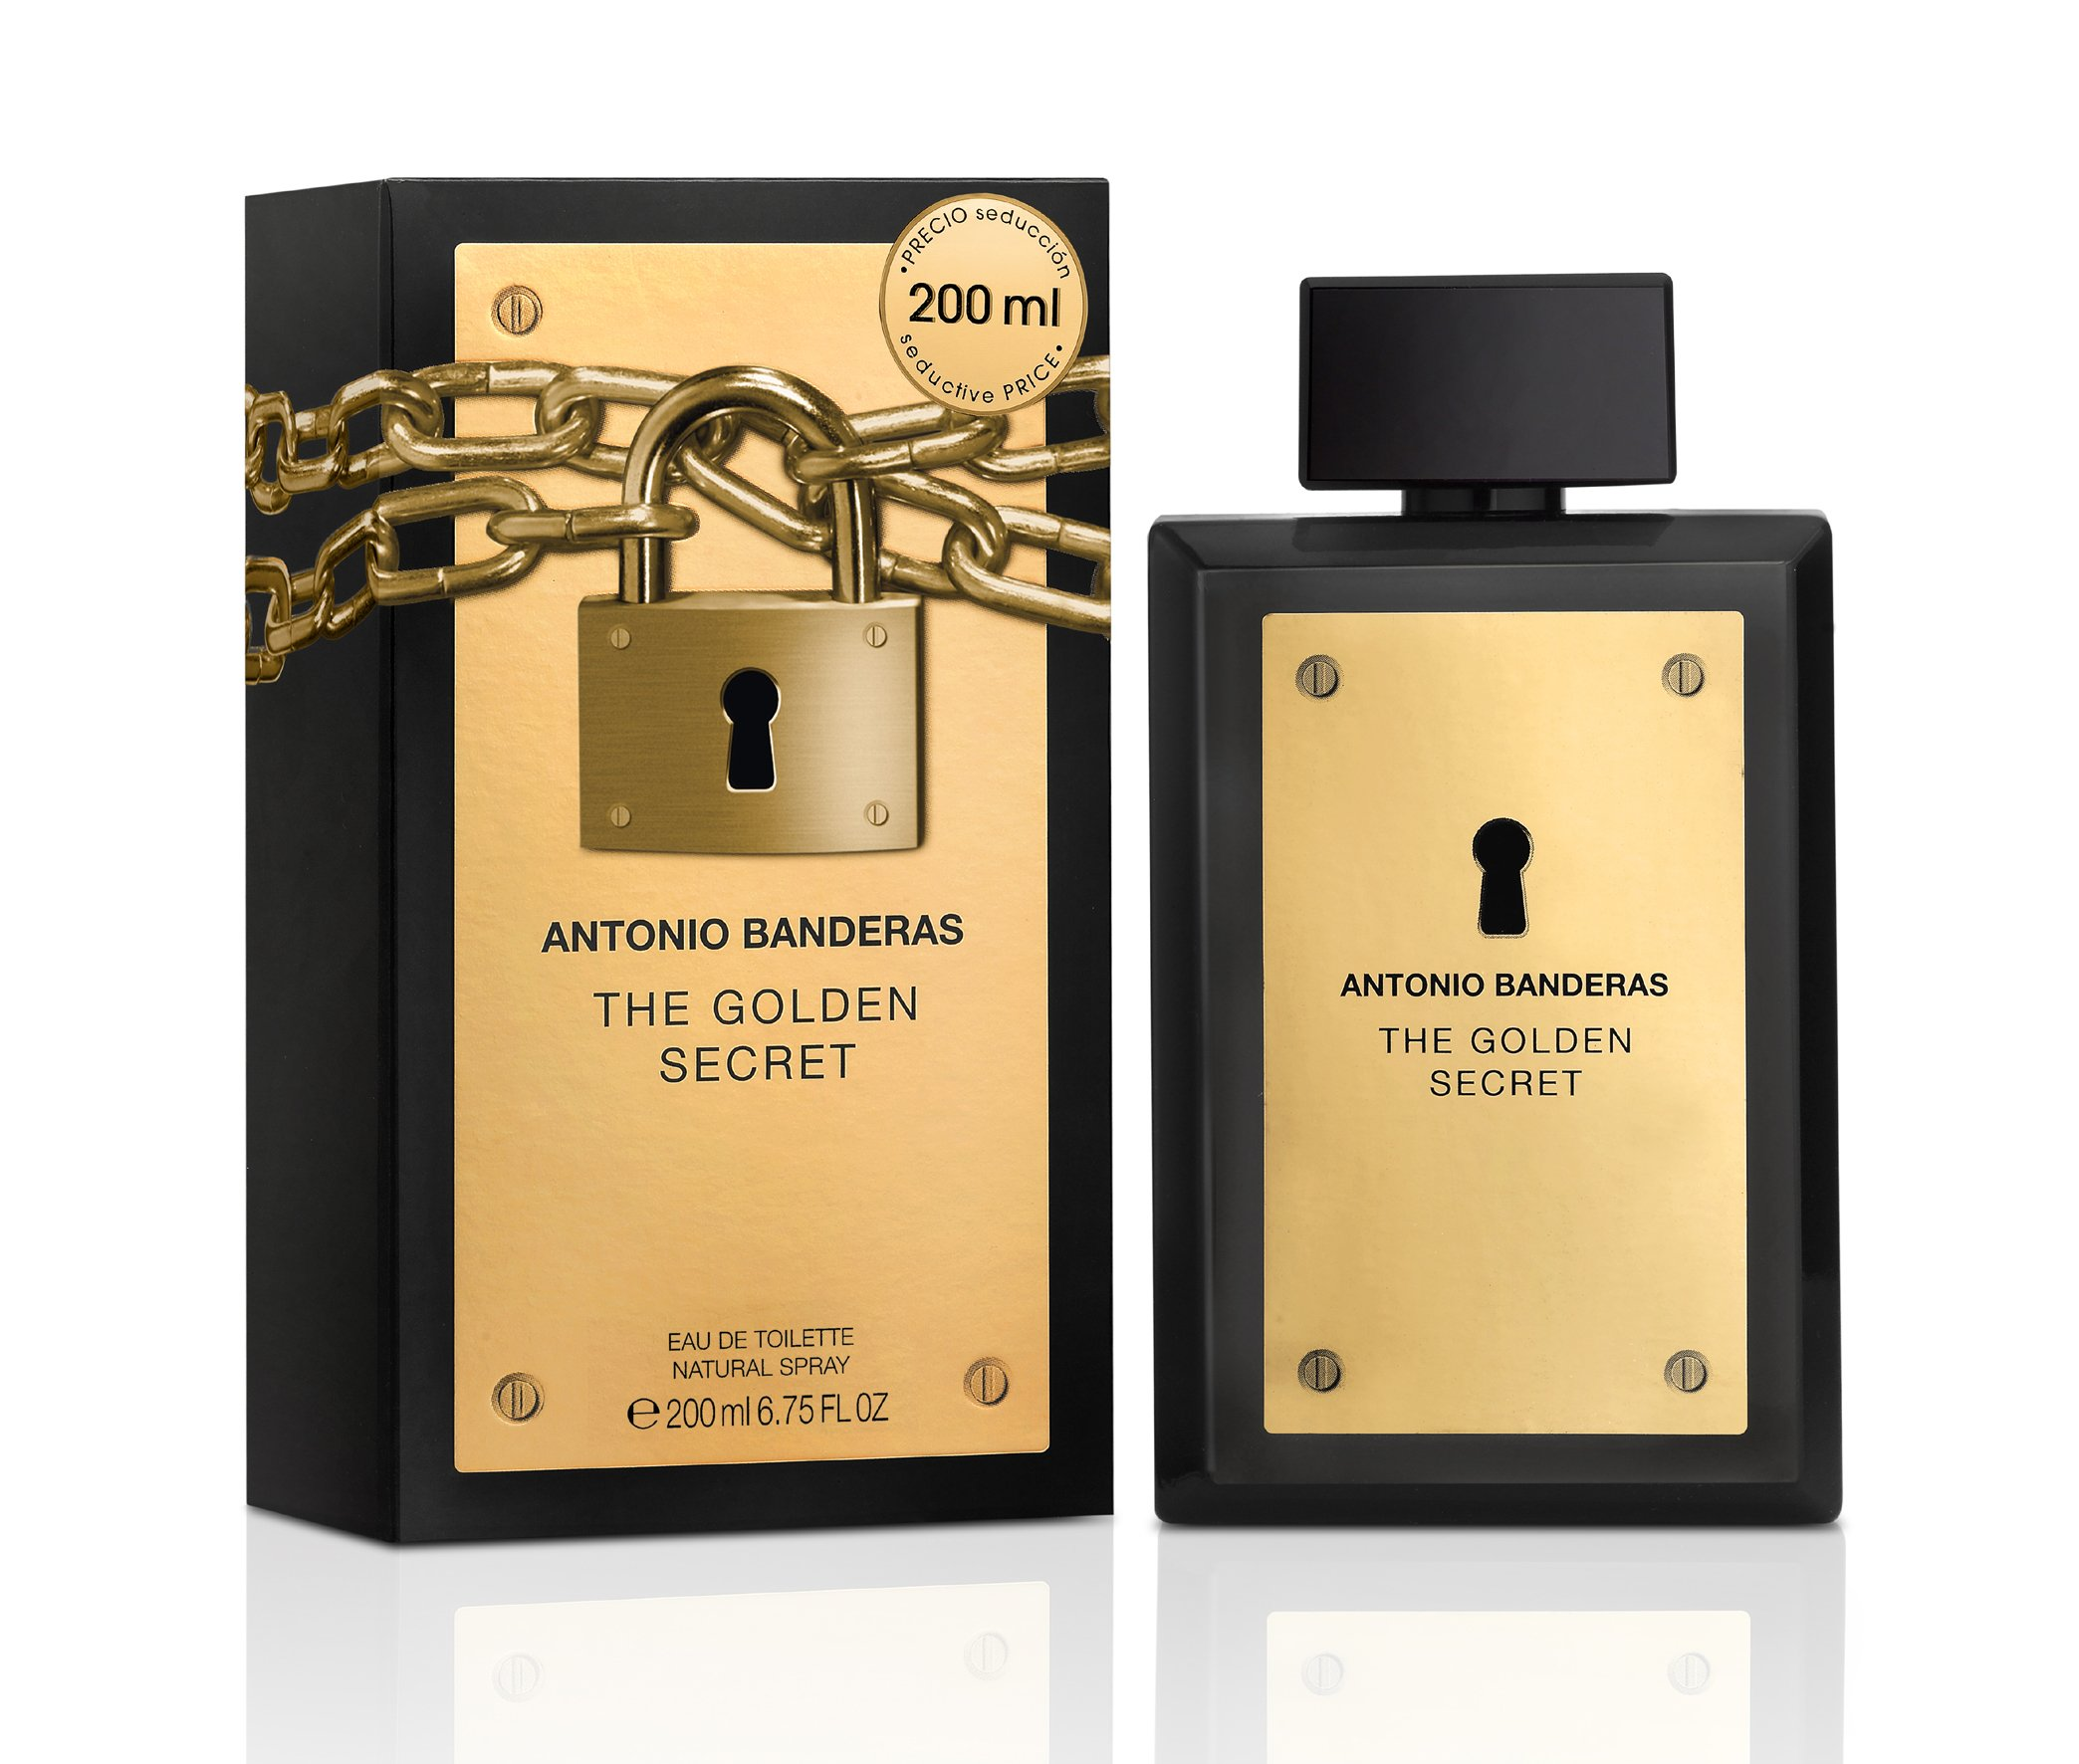 Antonio Banderas The Golden Secret for Men Eau de Toilette Spray, 6.75 Ounce